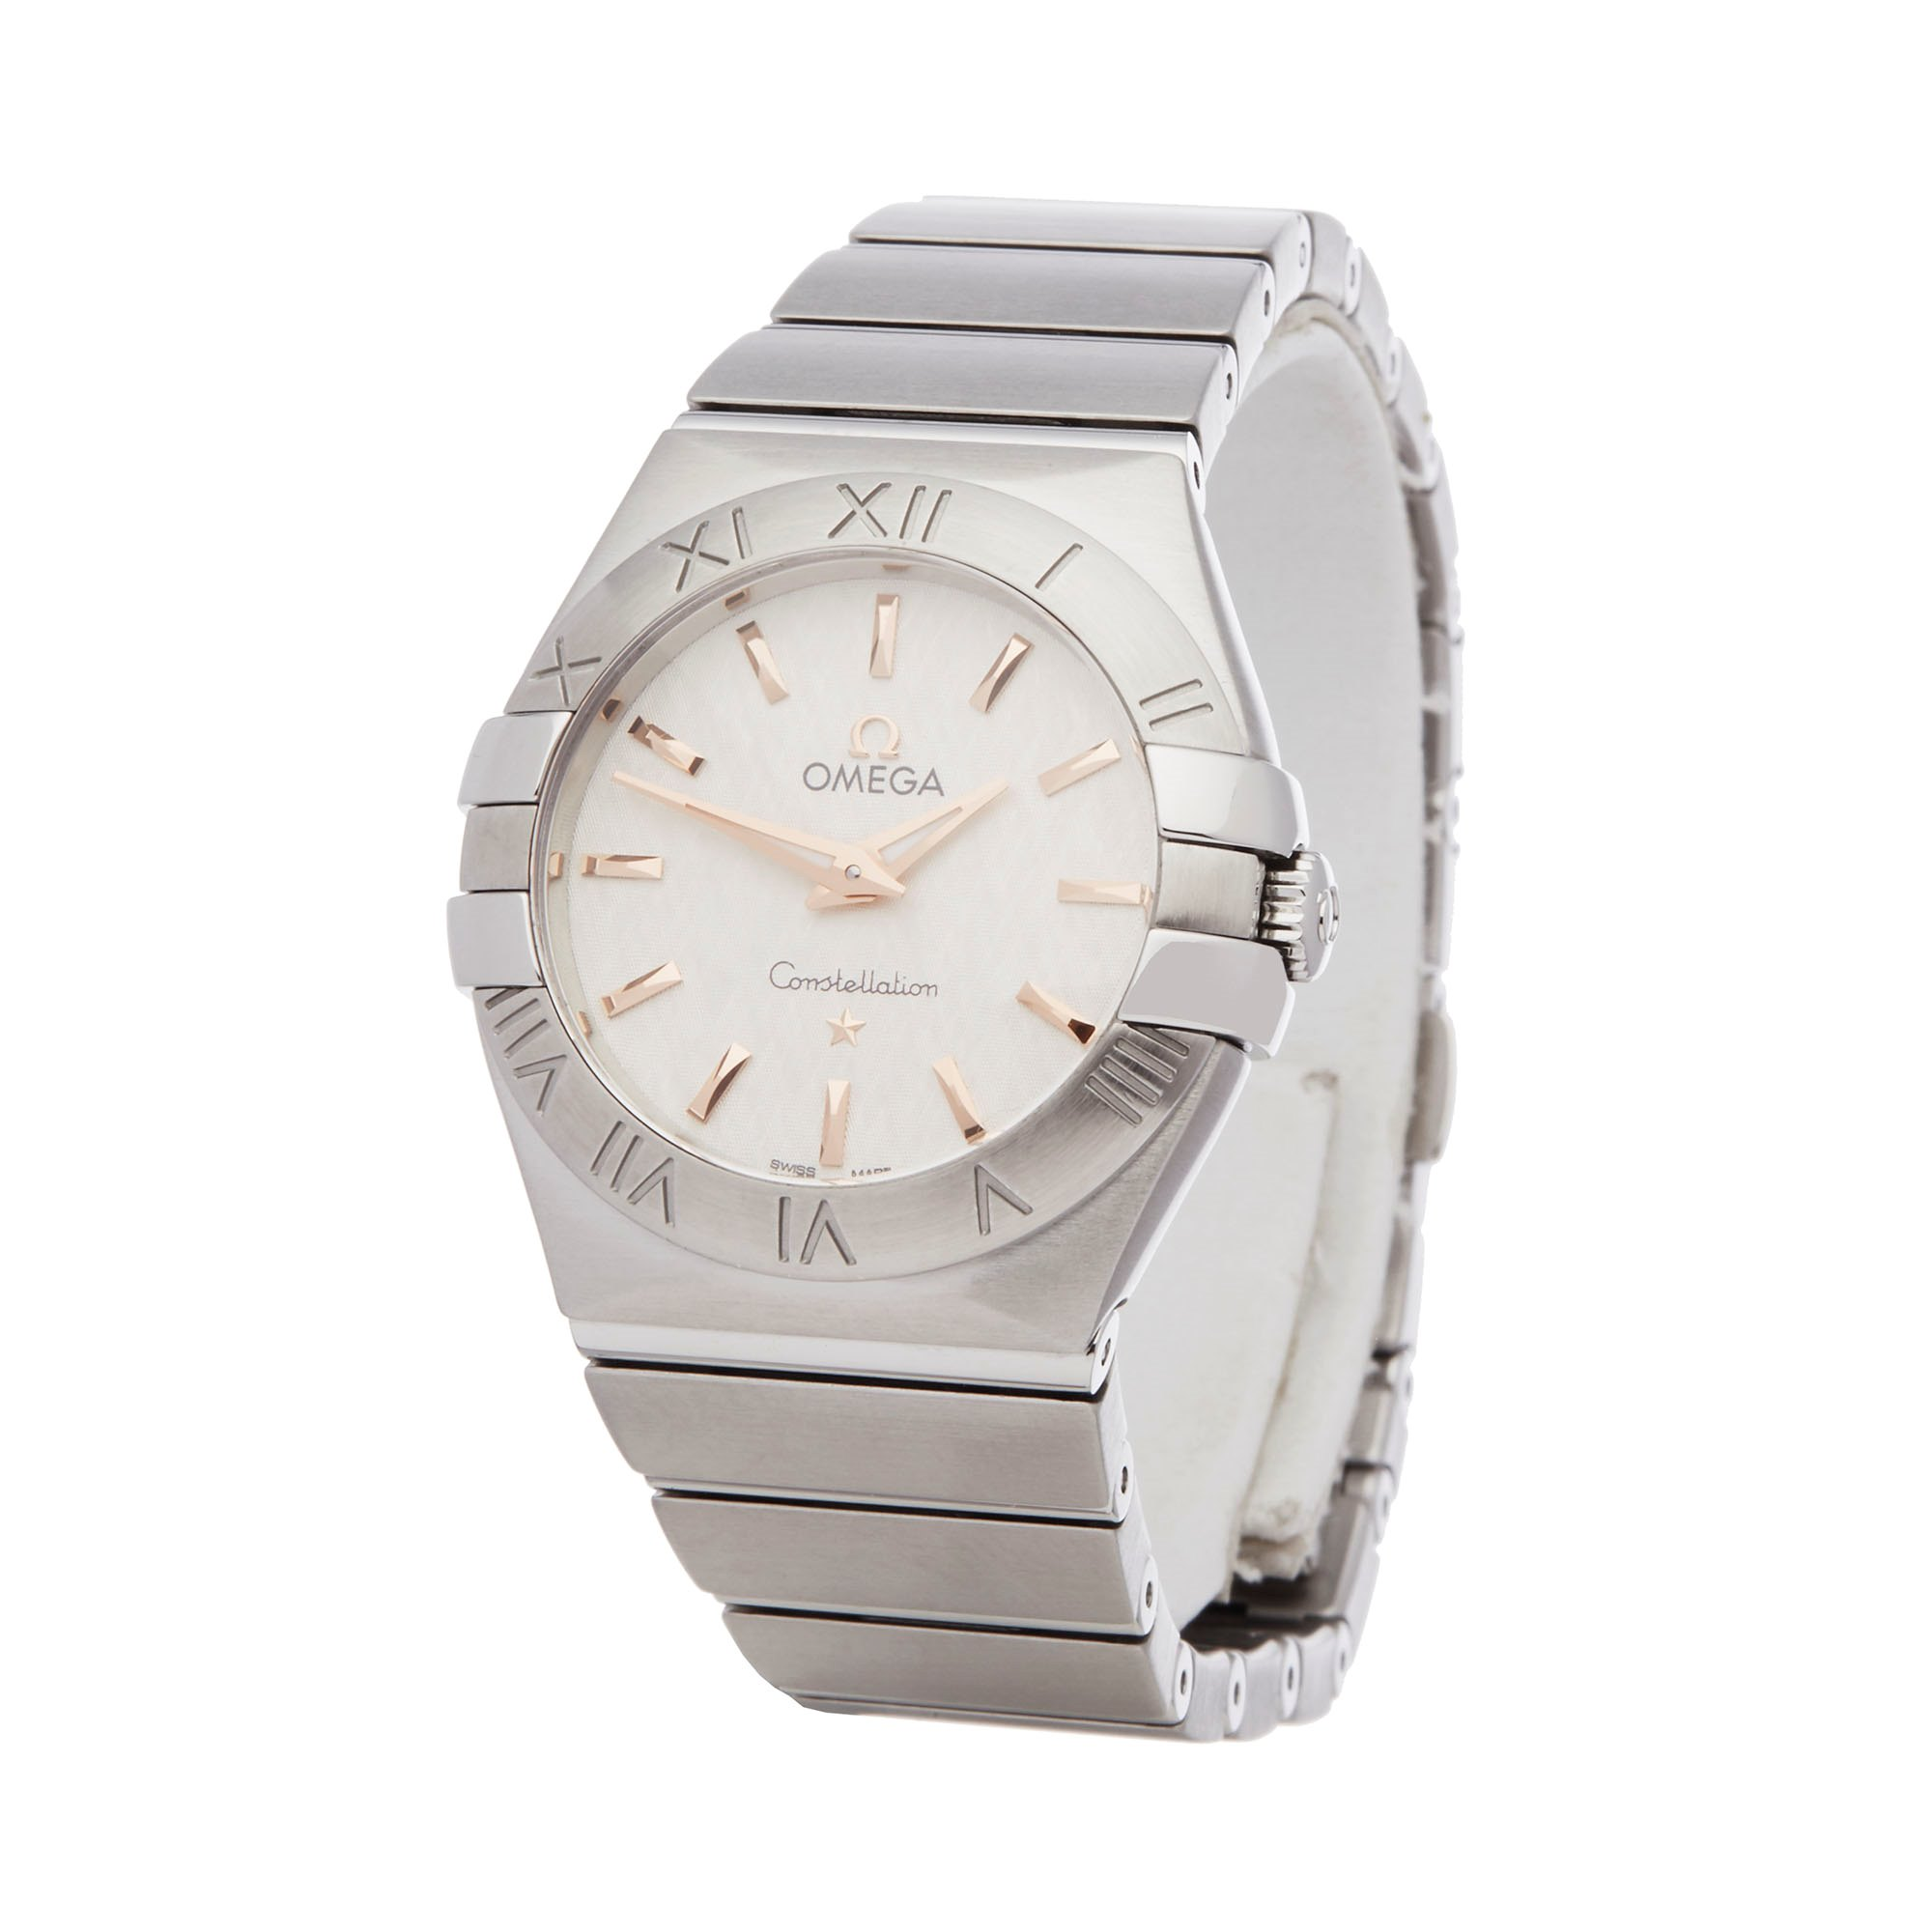 Omega Constellation 0 123.10.27.60.02.004 Ladies Stainless Steel Watch